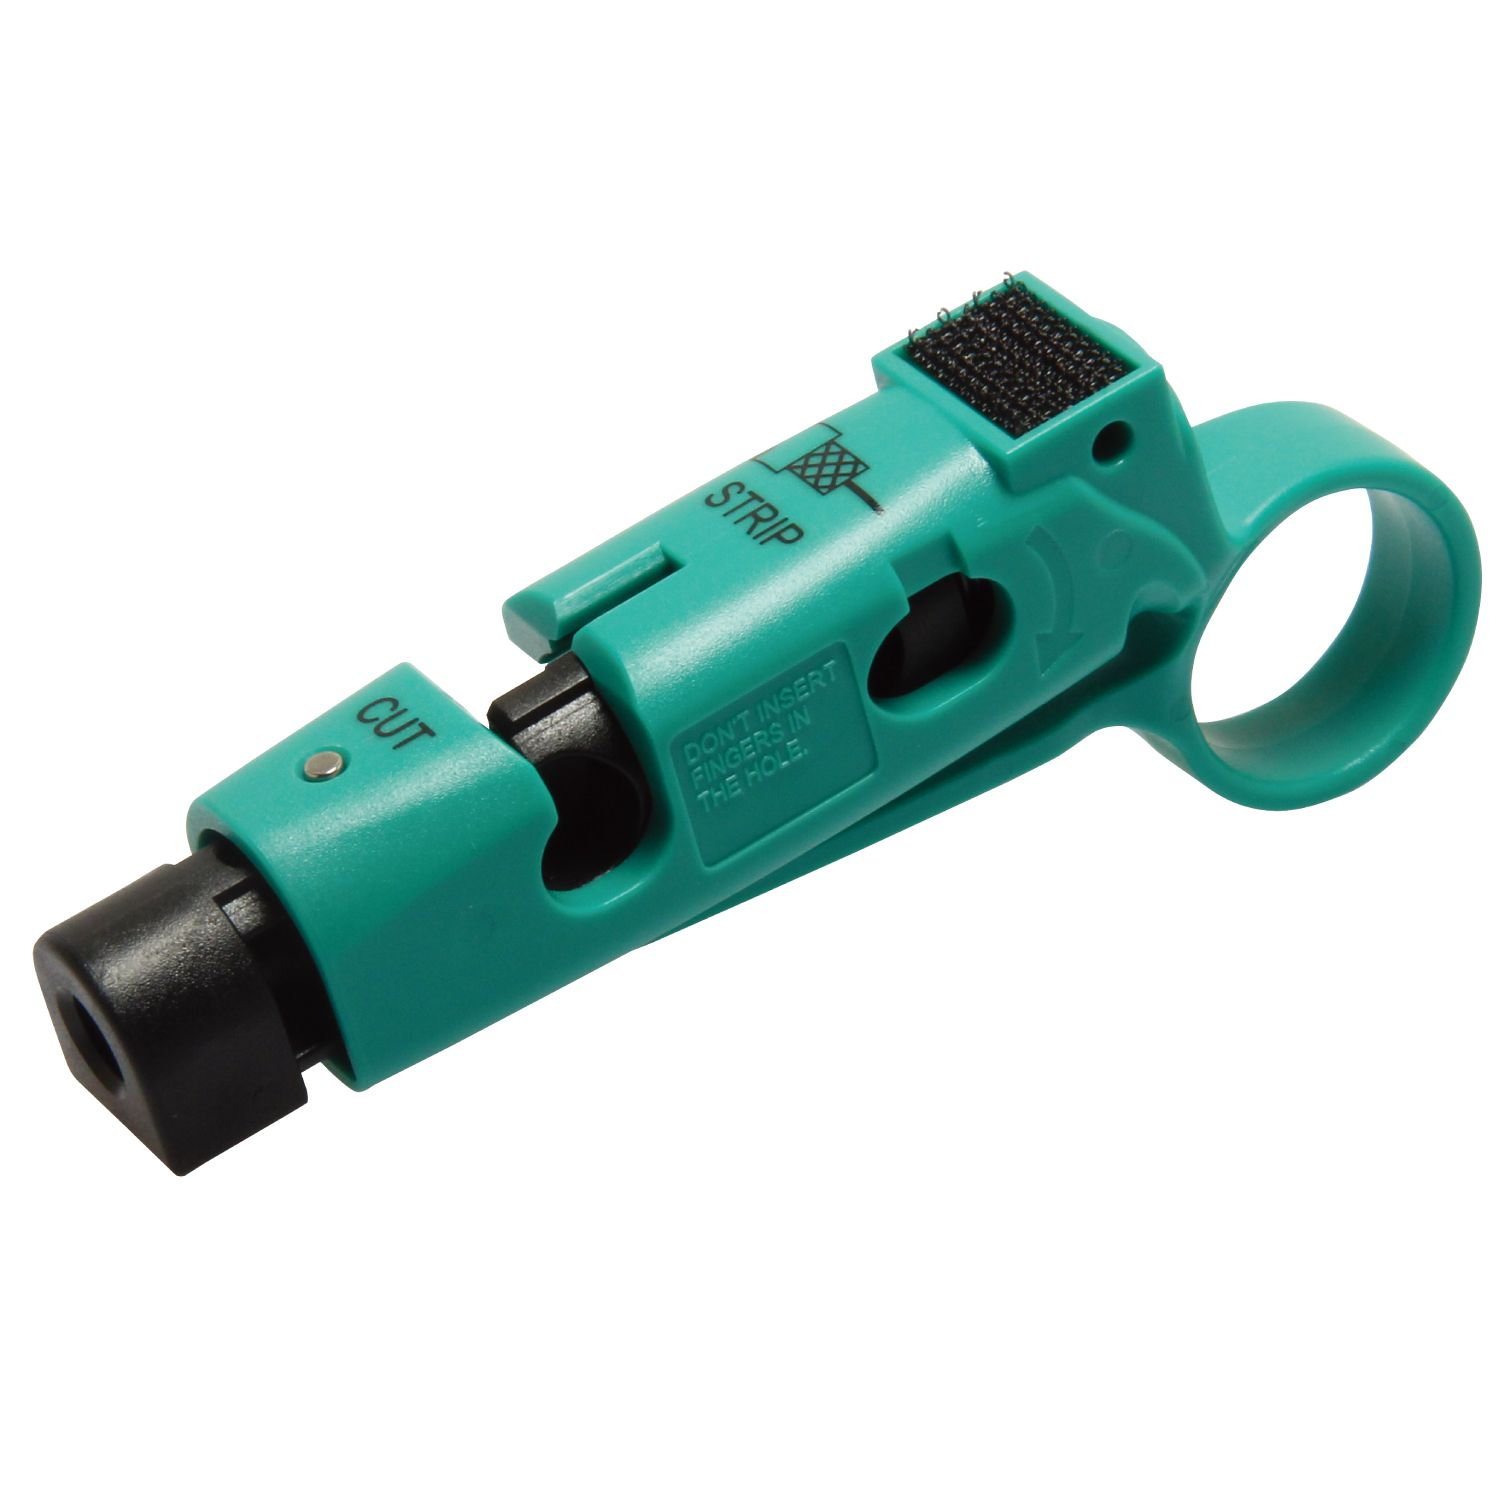 Po workers fast stripping coaxial cable stripper strippers stripping knife CP-507